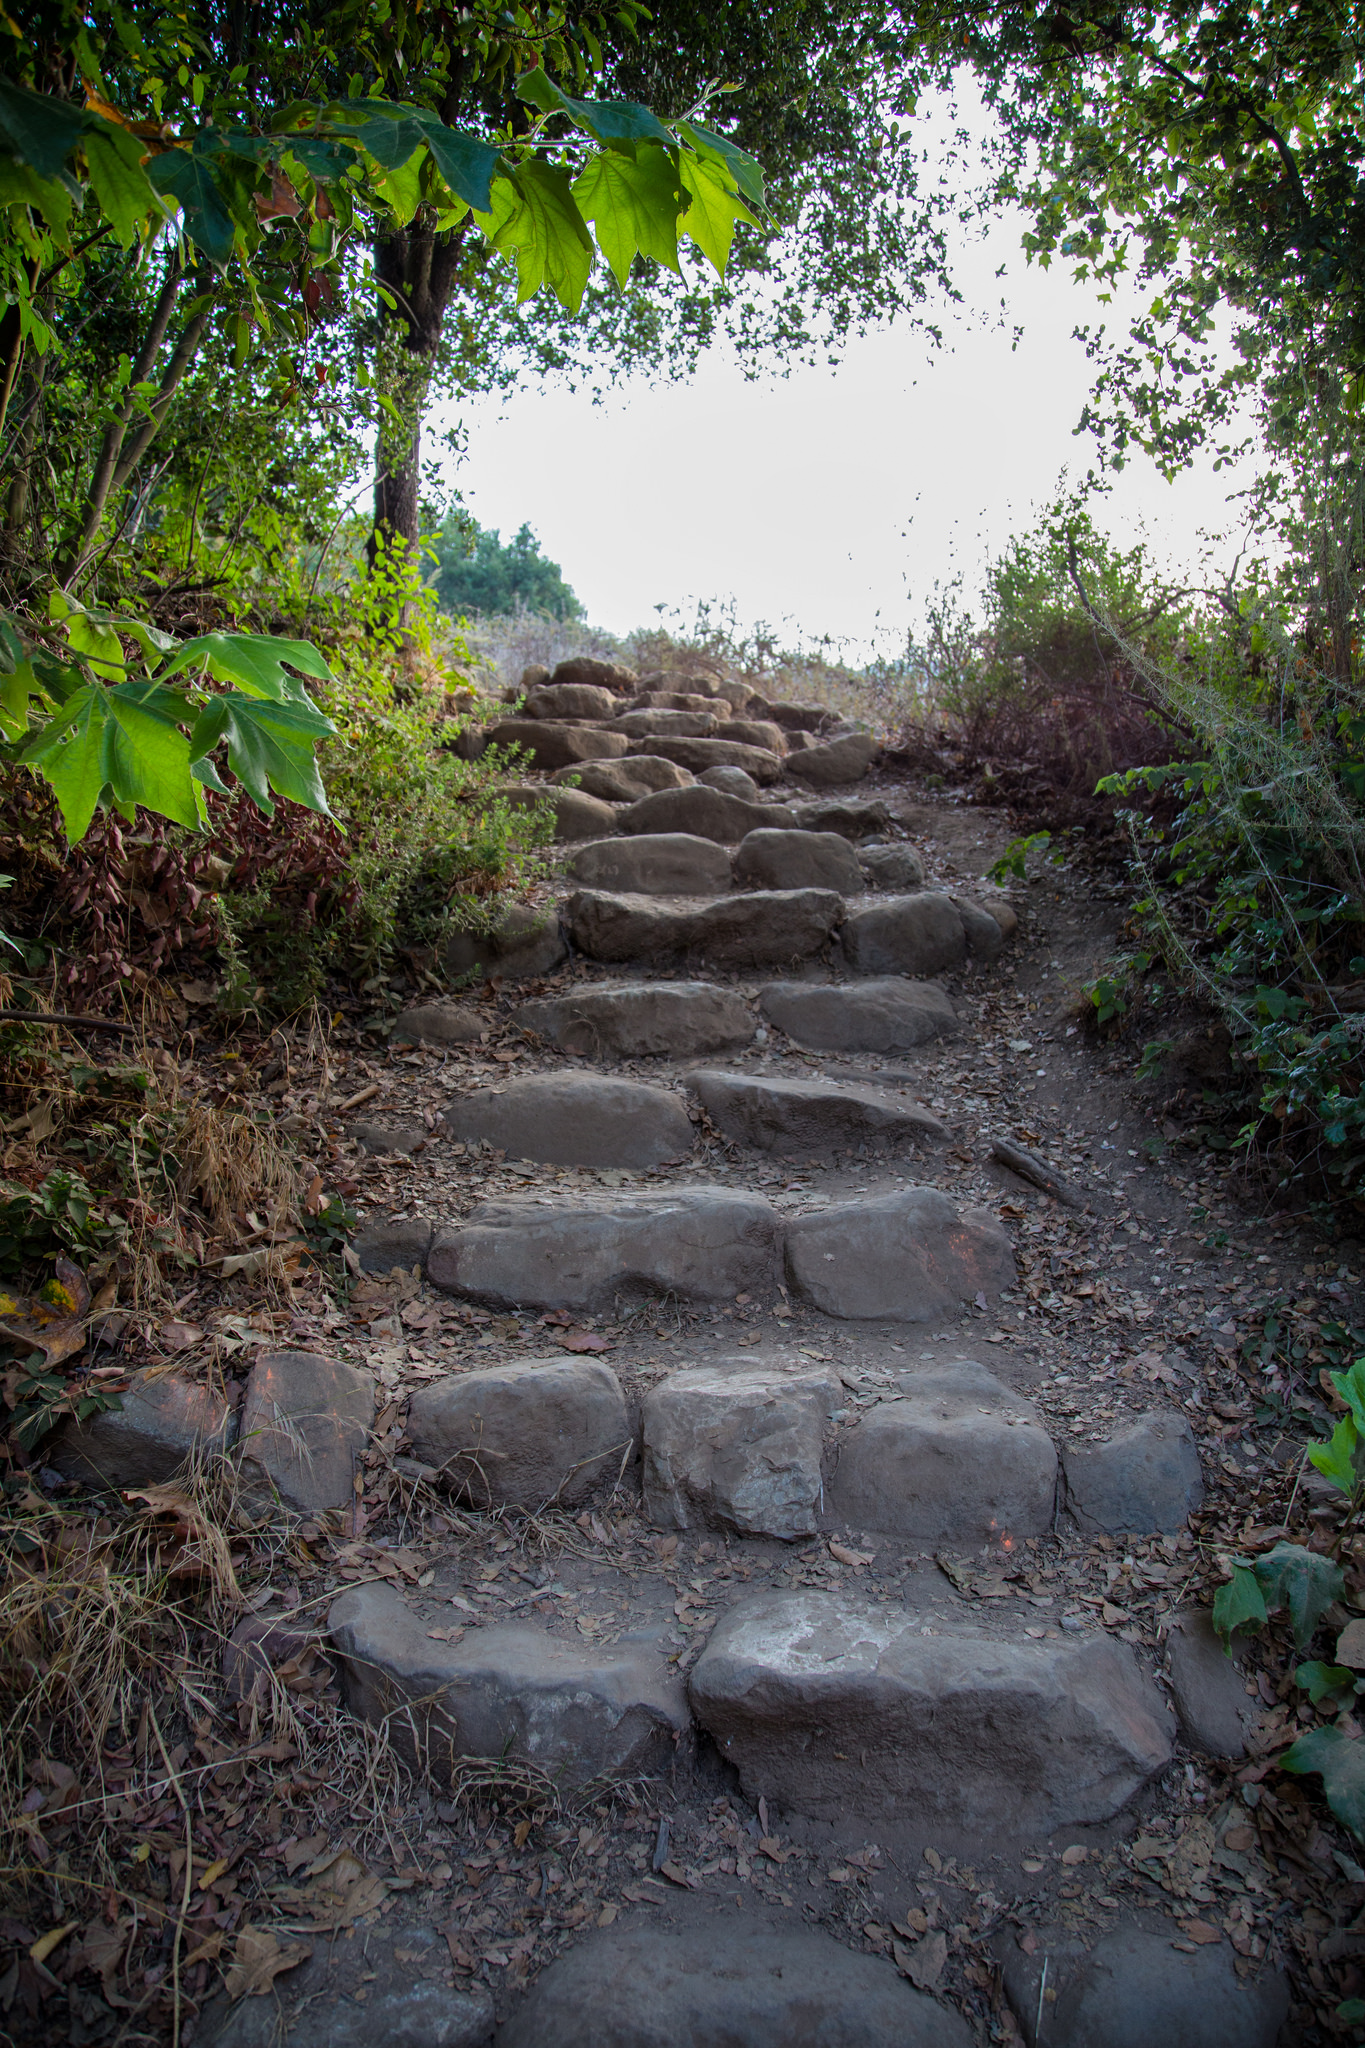 Steps at the trailhead leading up to the Rising Sun Trail which takes you to Tropical Terrace and the Solstice Canyon Falls. You can also take the easier, paved Solstice Canyon Trail directly there, but if you want to do a little work, take Rising Sun.